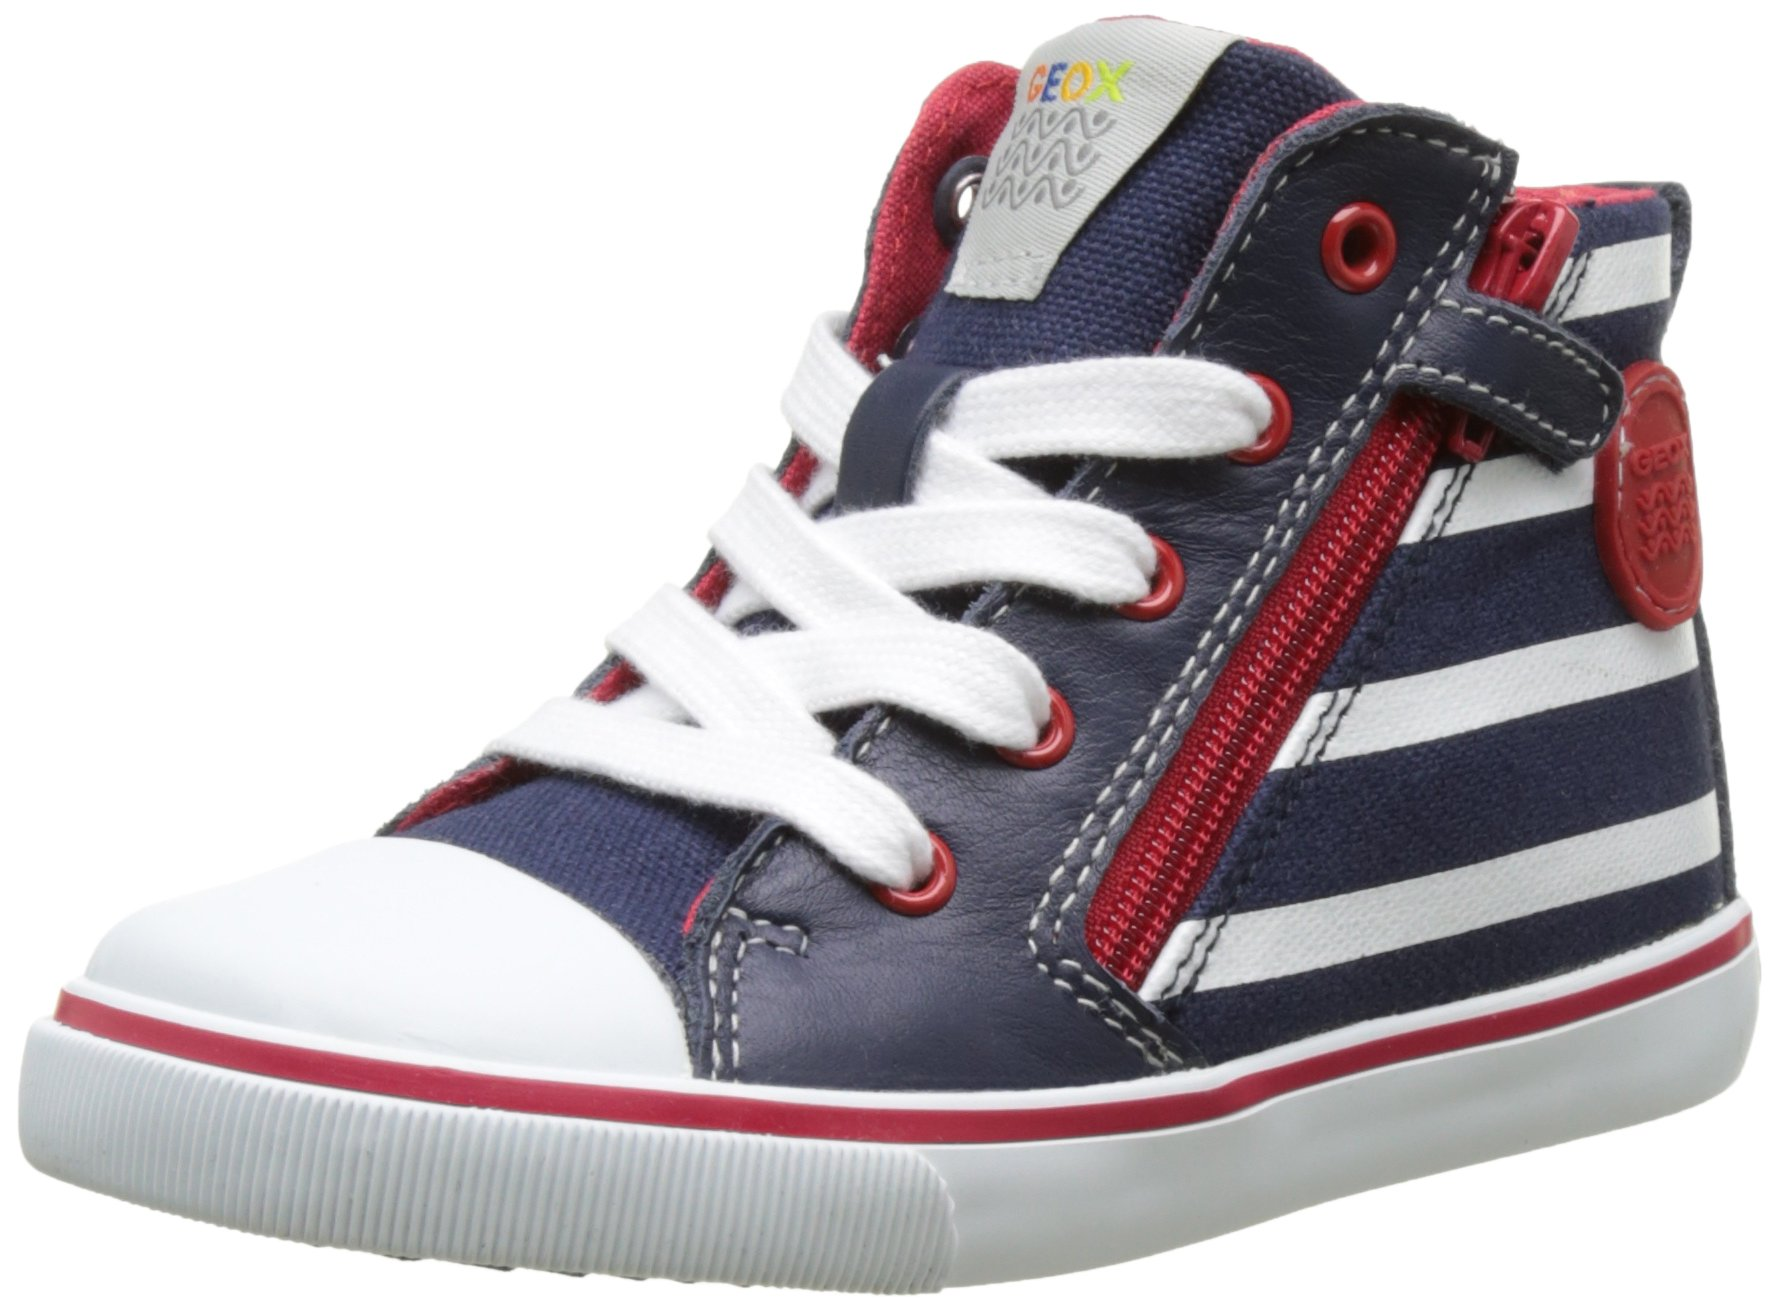 Geox Boys' Baby Kiwiboy 85 Sneaker, Navy/White, 27 BR/10 M US Little Kid